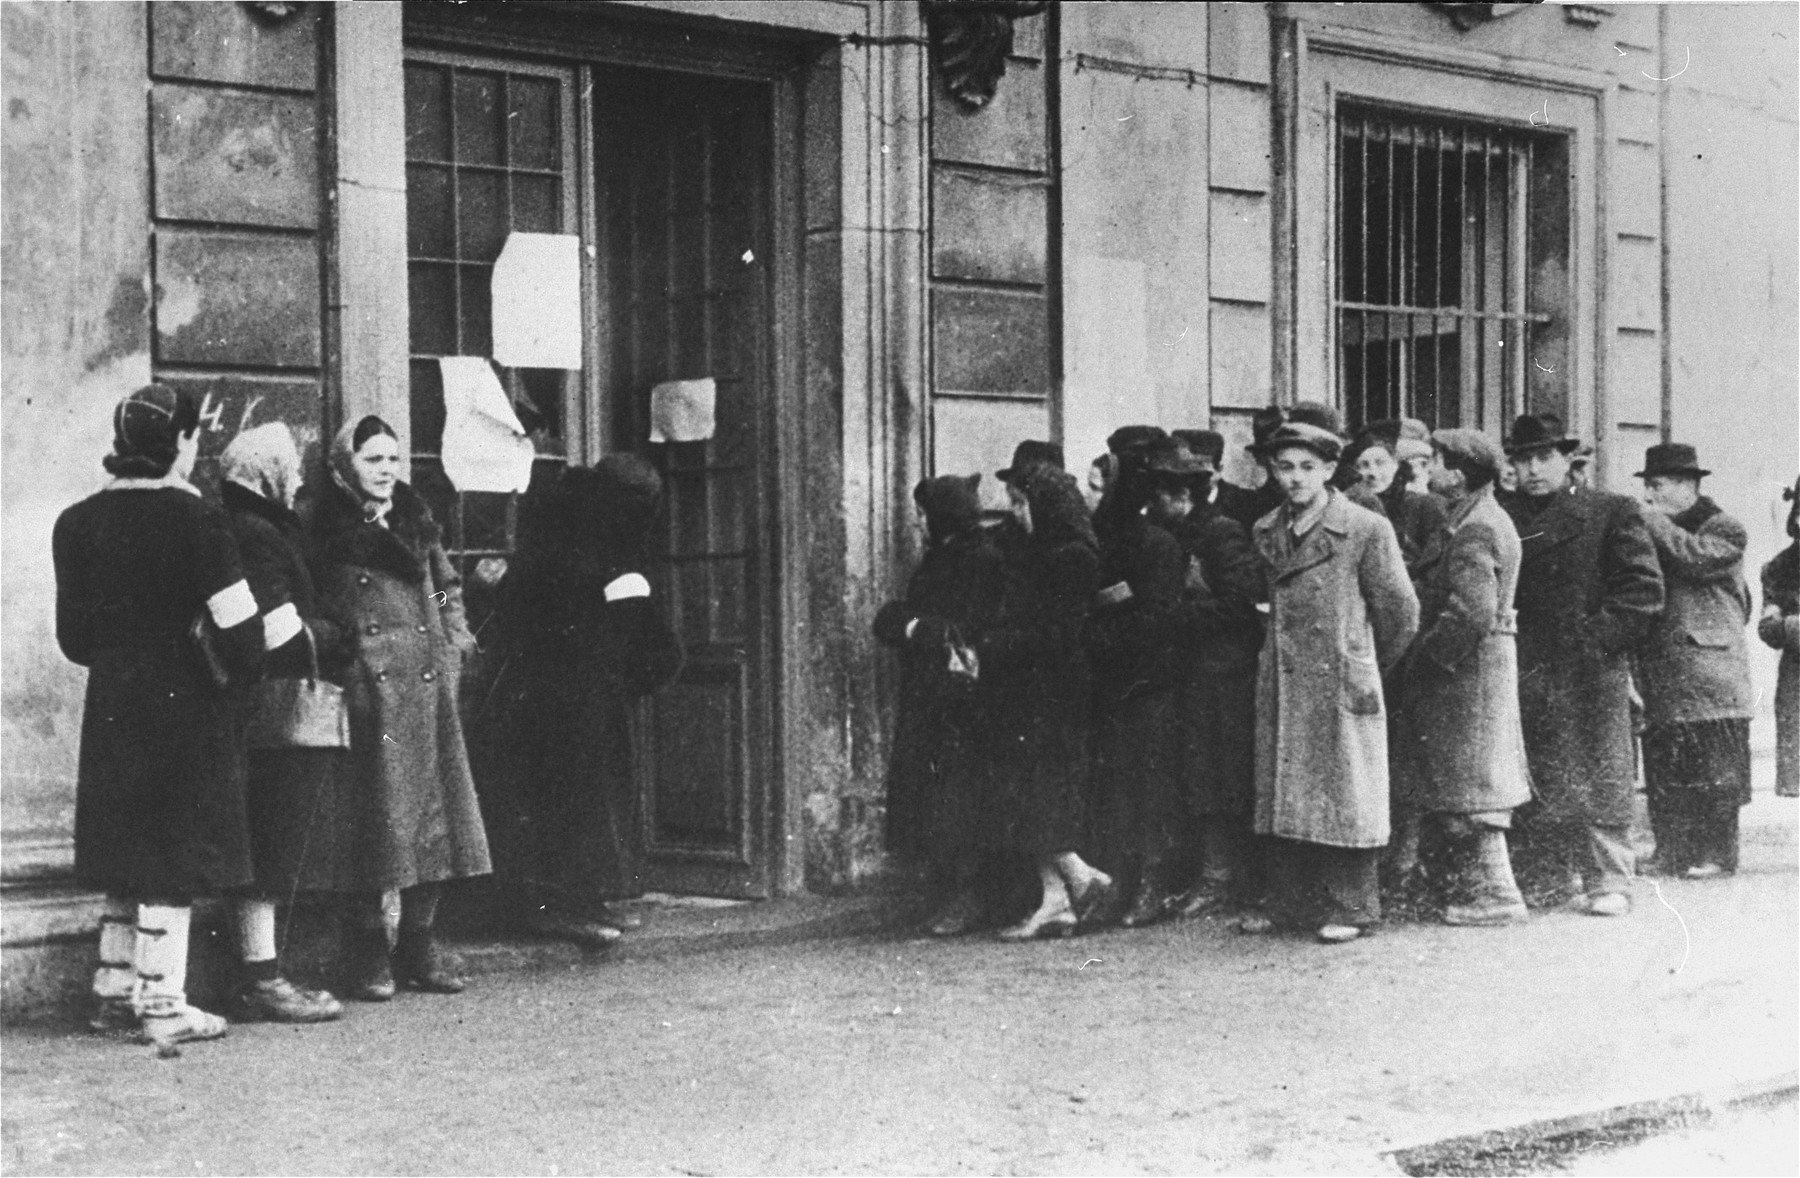 Jews waiting in line outside the Judenrat to register for apartments in the ghetto.